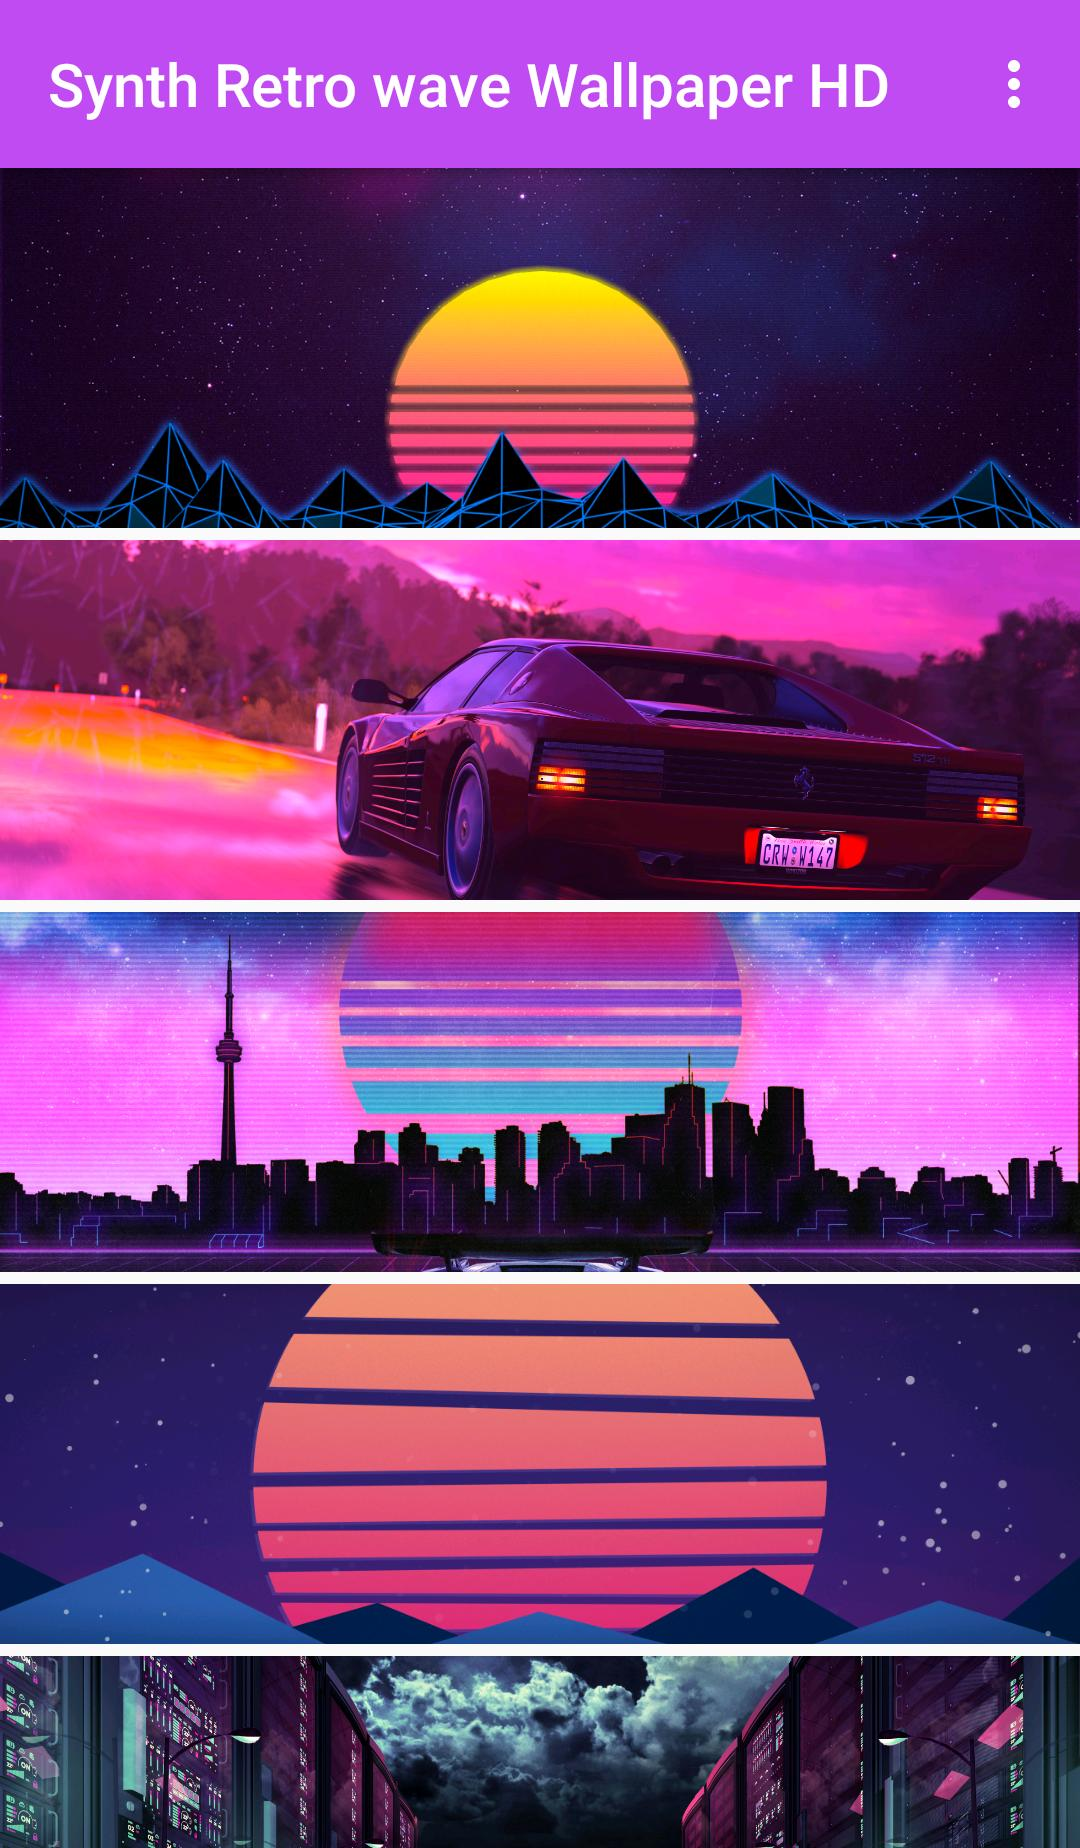 Synth Retrowave Wallpaper HD for Android - APK Download